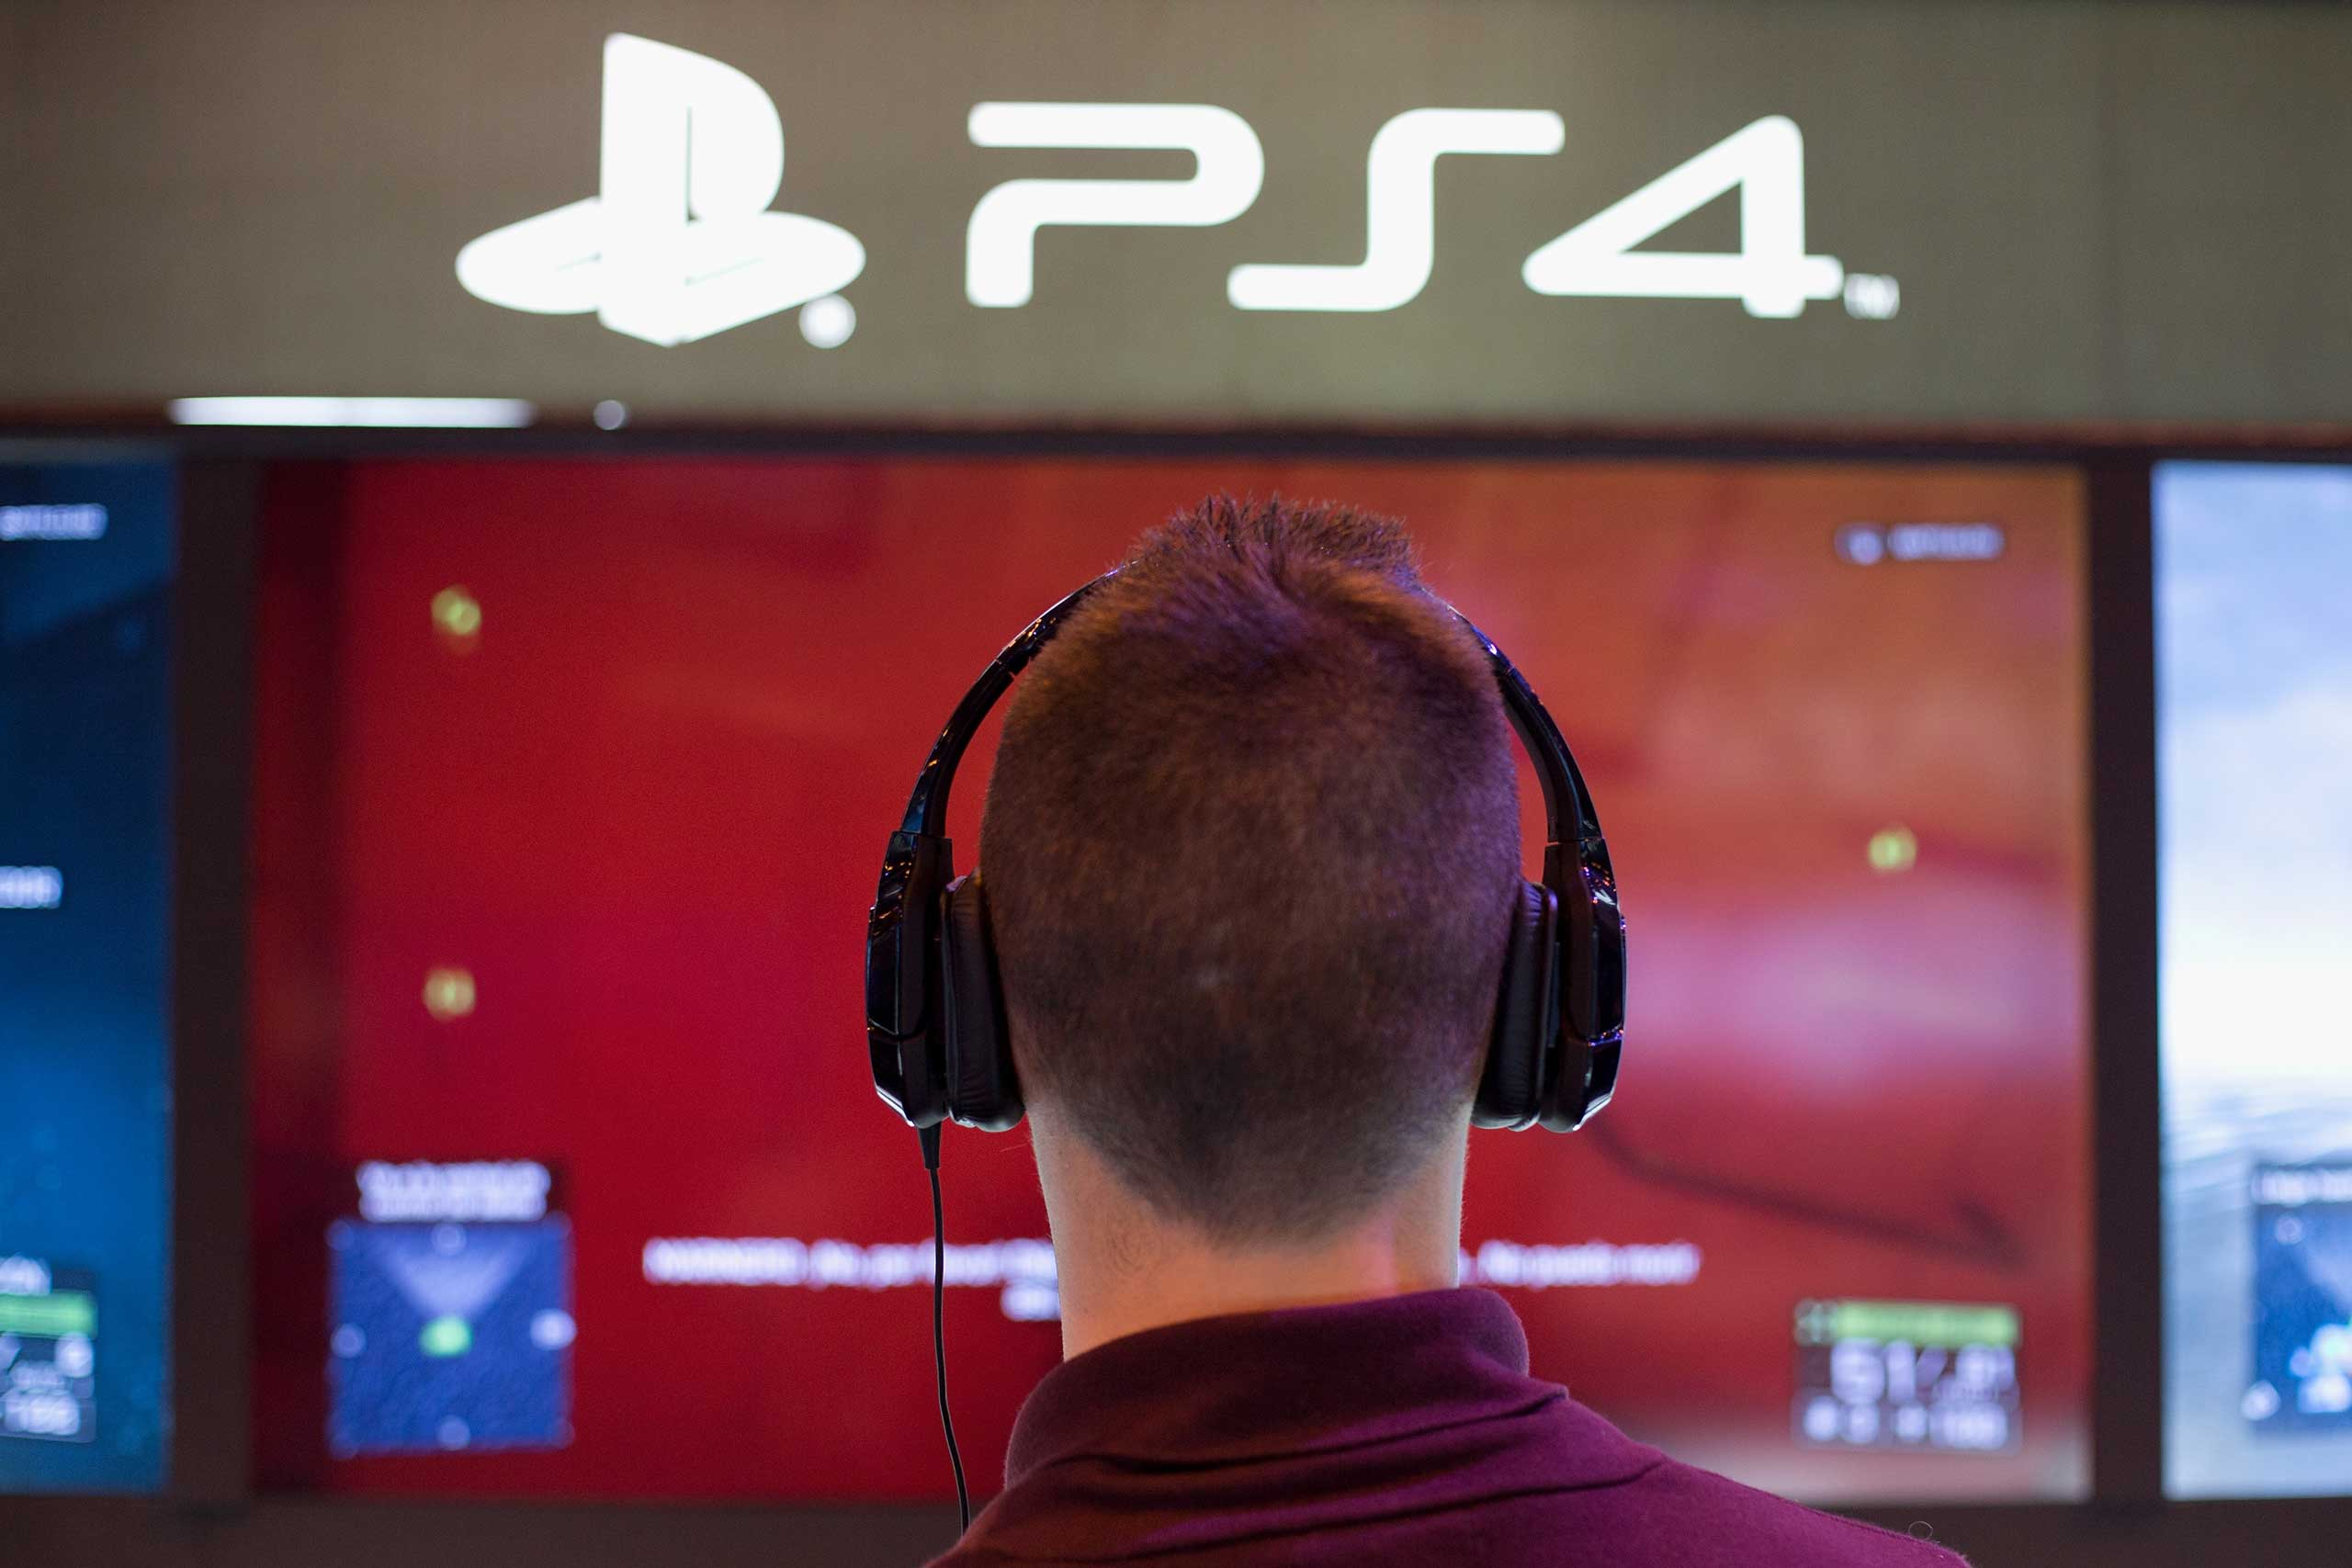 A man plays on a Playstation 4 on Nov. 9, 2013 in Madrid.